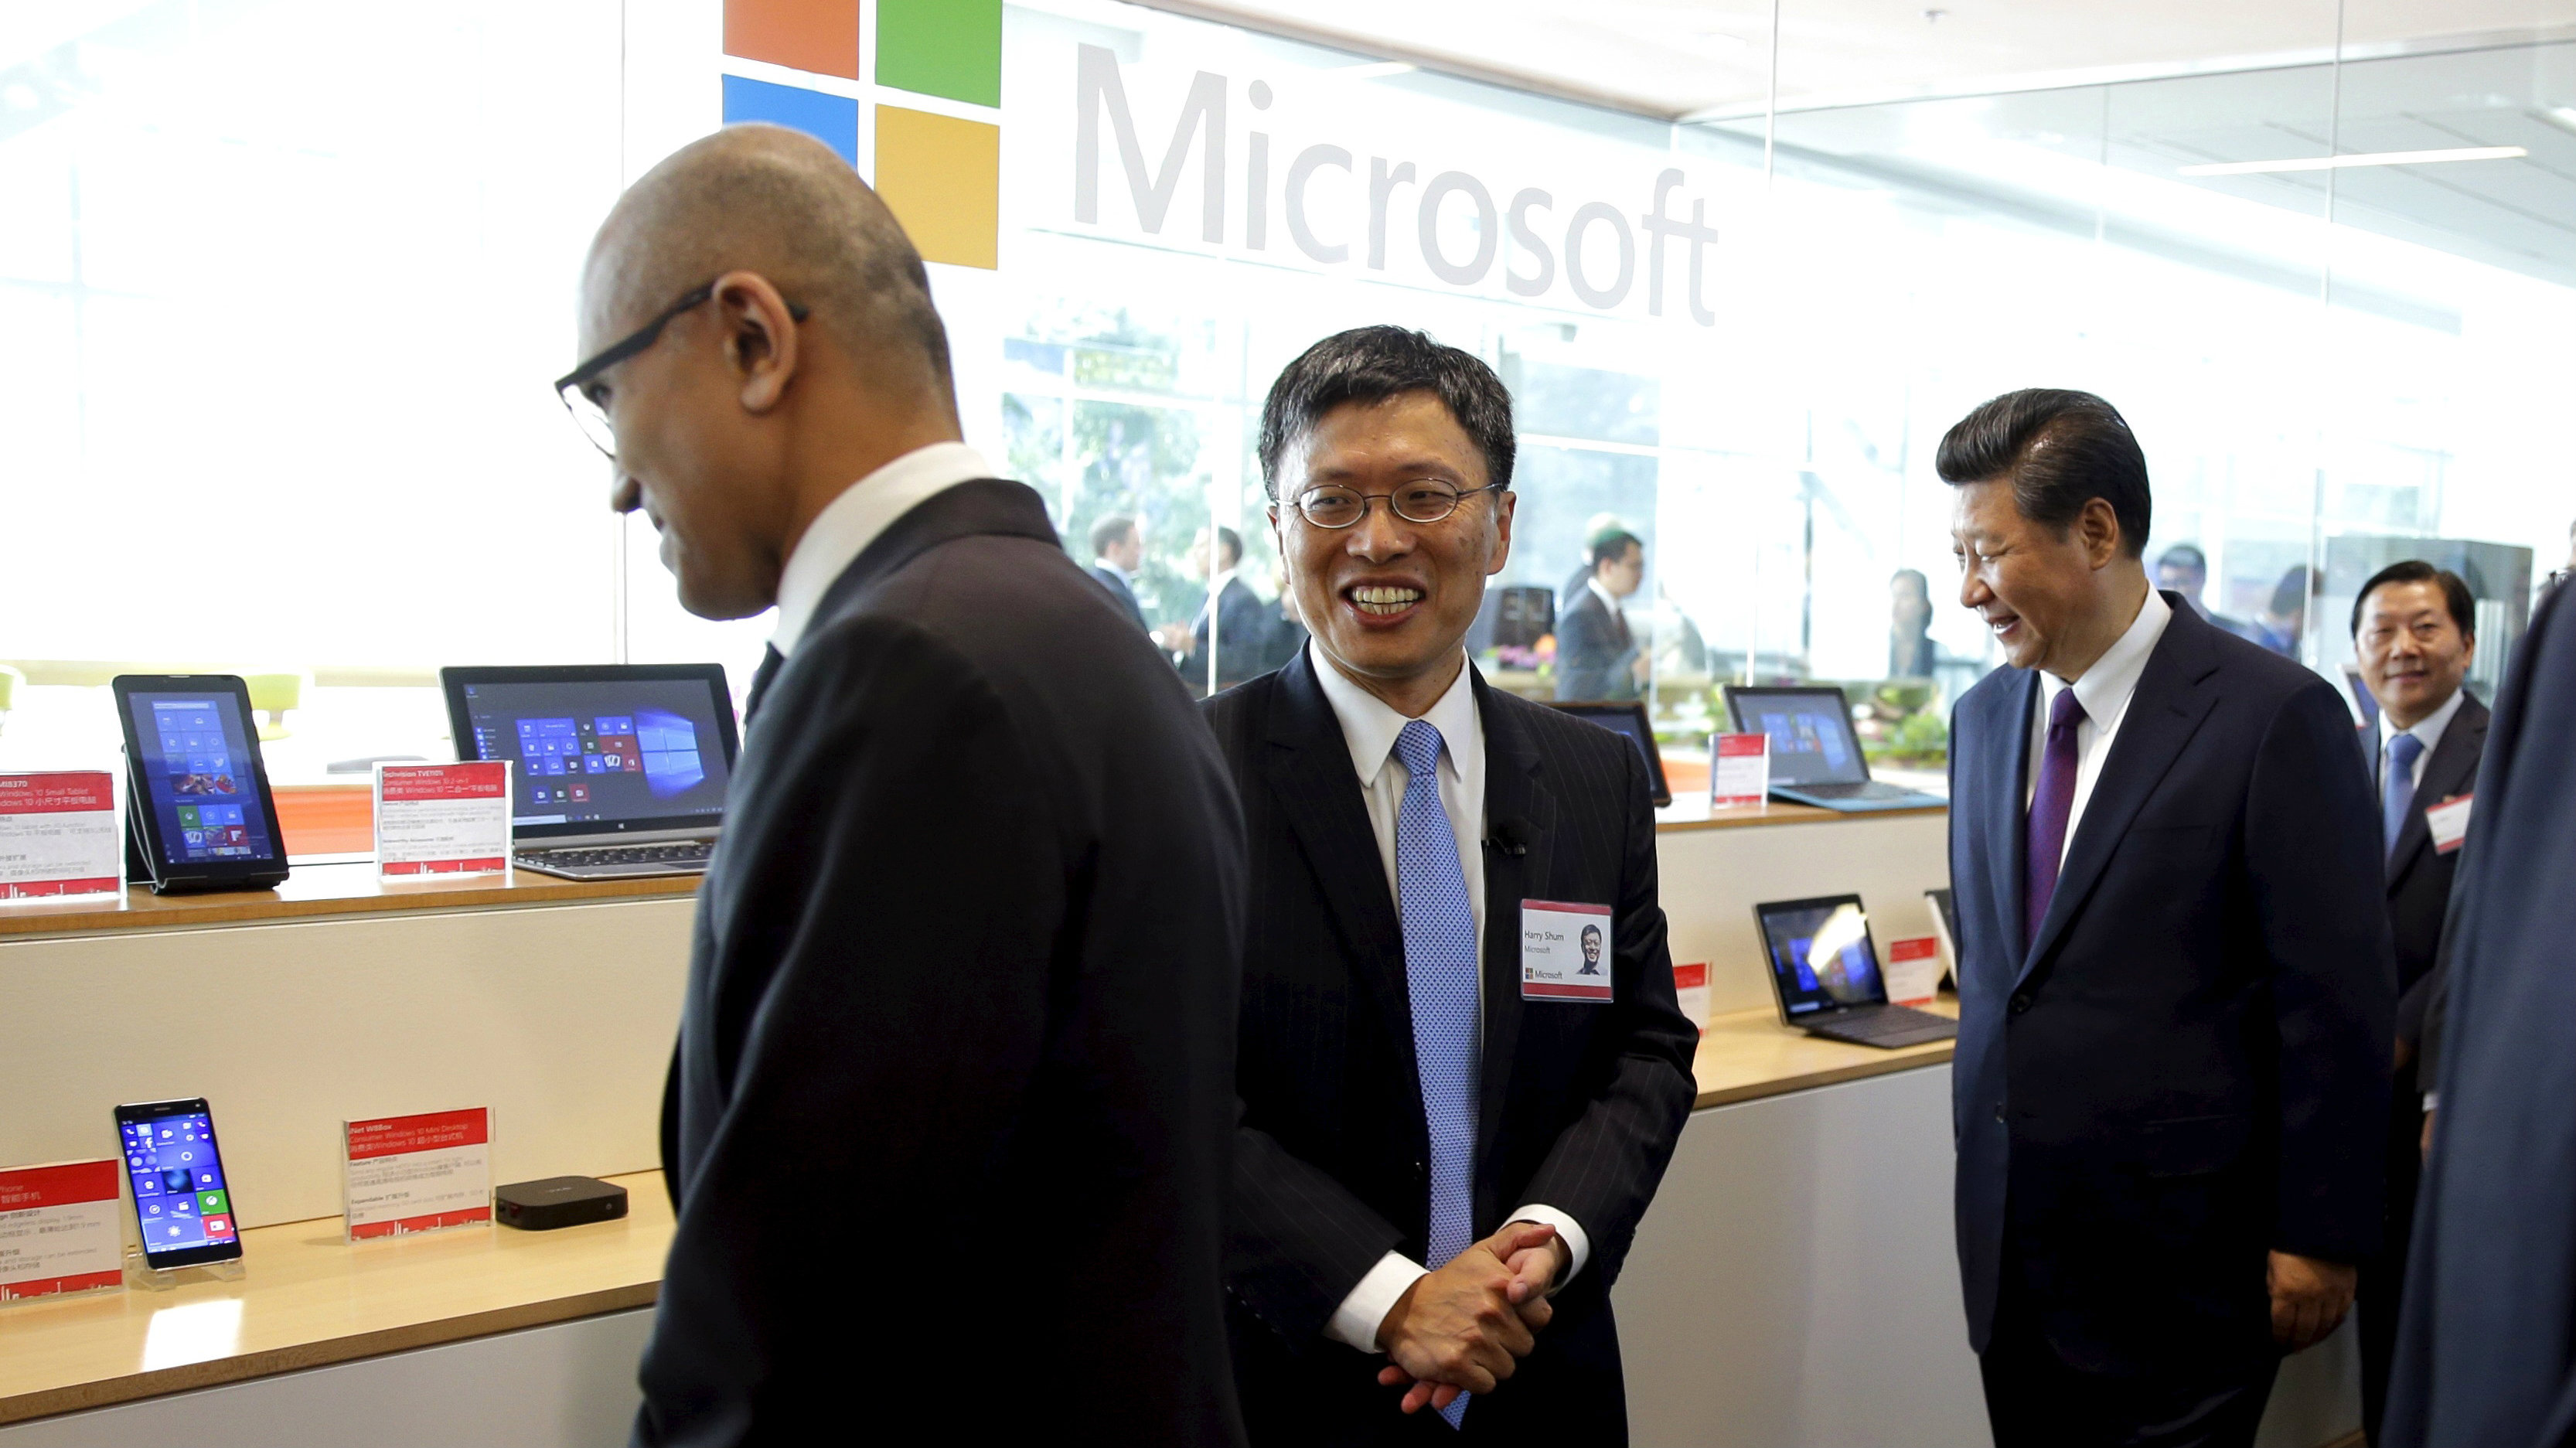 Harry Shum (C), Microsoft Executive Vice President of Technology and Research, and Microsoft CEO Satya Nadella (L) show Chinese President Xi Jinping (R) a display of devices running the Windows operating system that were made in China by ZTE Corporation during a tour of Microsoft's main campus in Redmond, Washington September 23, 2015. REUTERS/Ted S. Warren/Pool